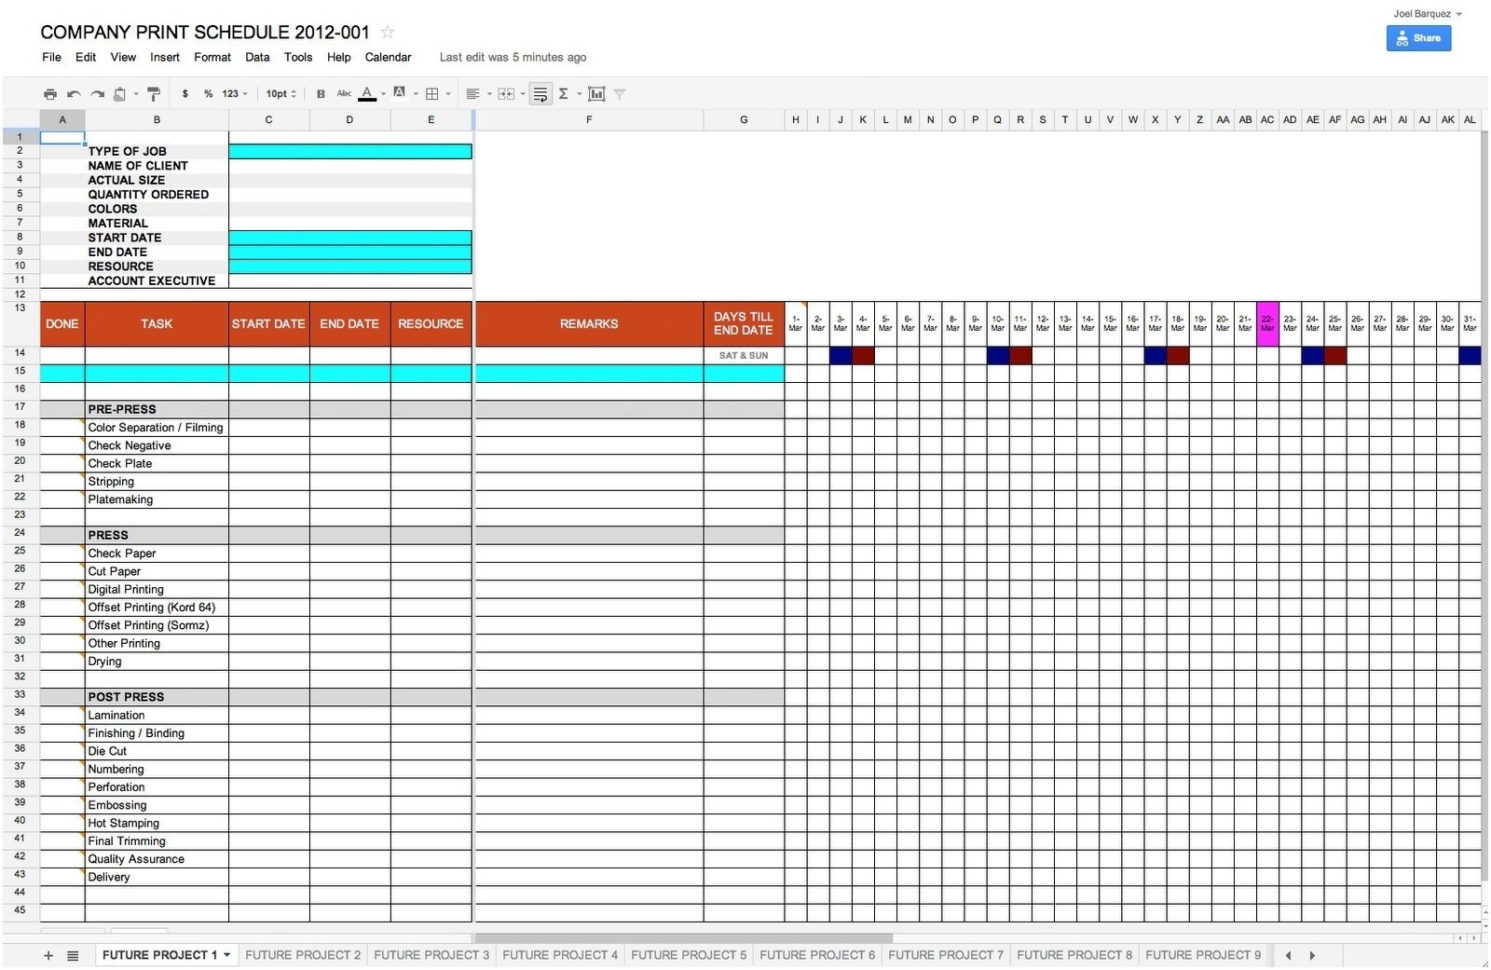 Marketing Calendar Template Google Docs Google Docs Calendar Intended For Marketing Calendar Template Google Docs